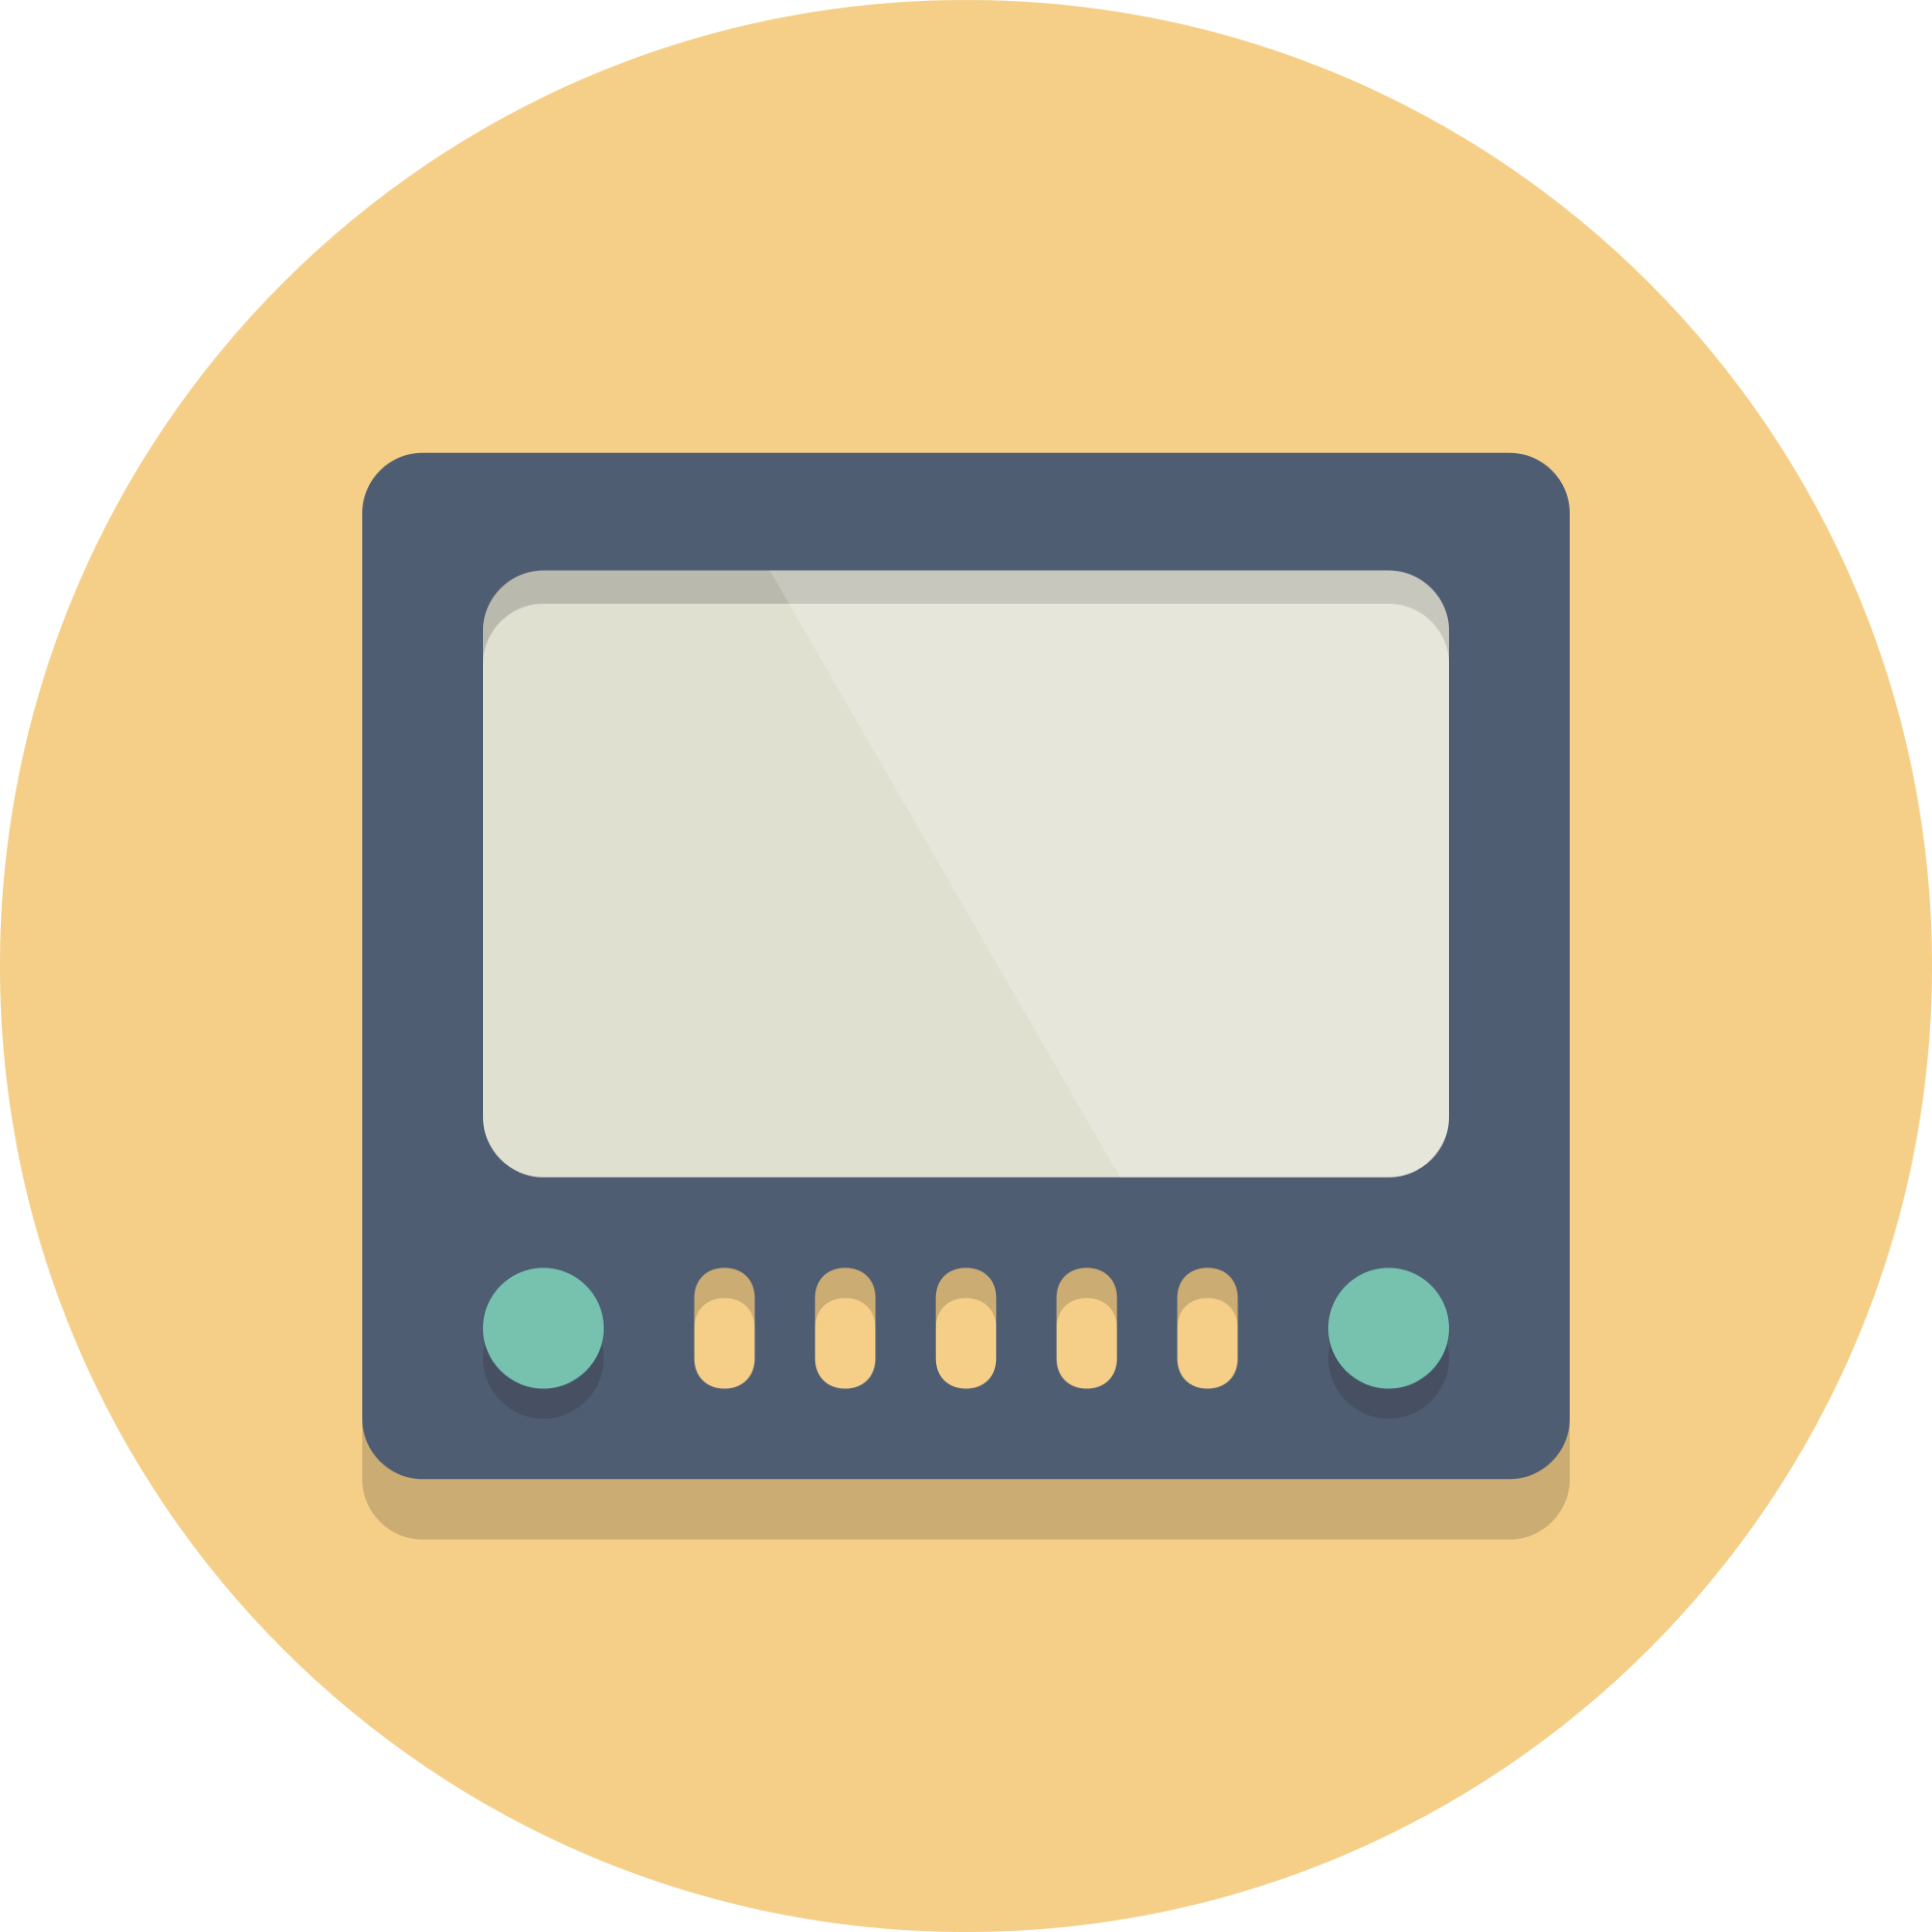 File circle icons tv. Television clipart tele